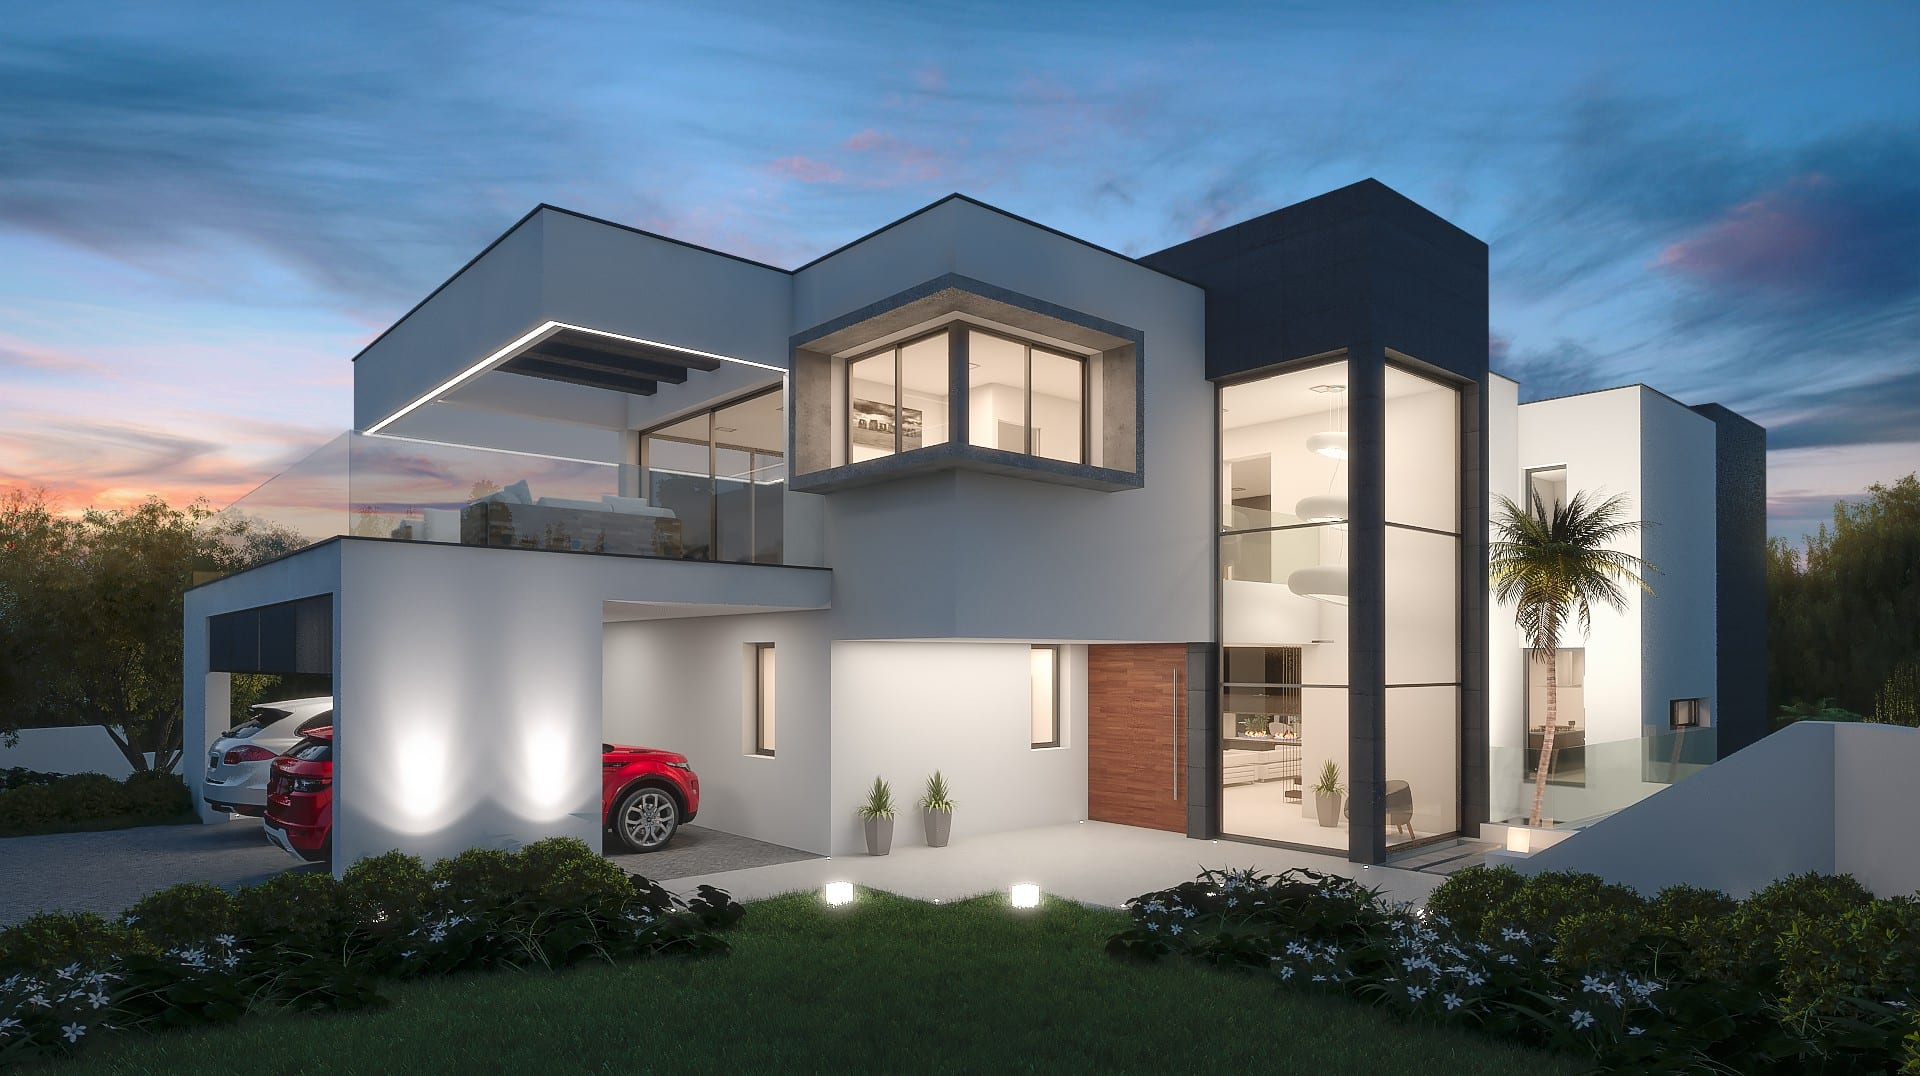 Nueva andalucia 2 x modern villas next to each other for Villa moderne plan